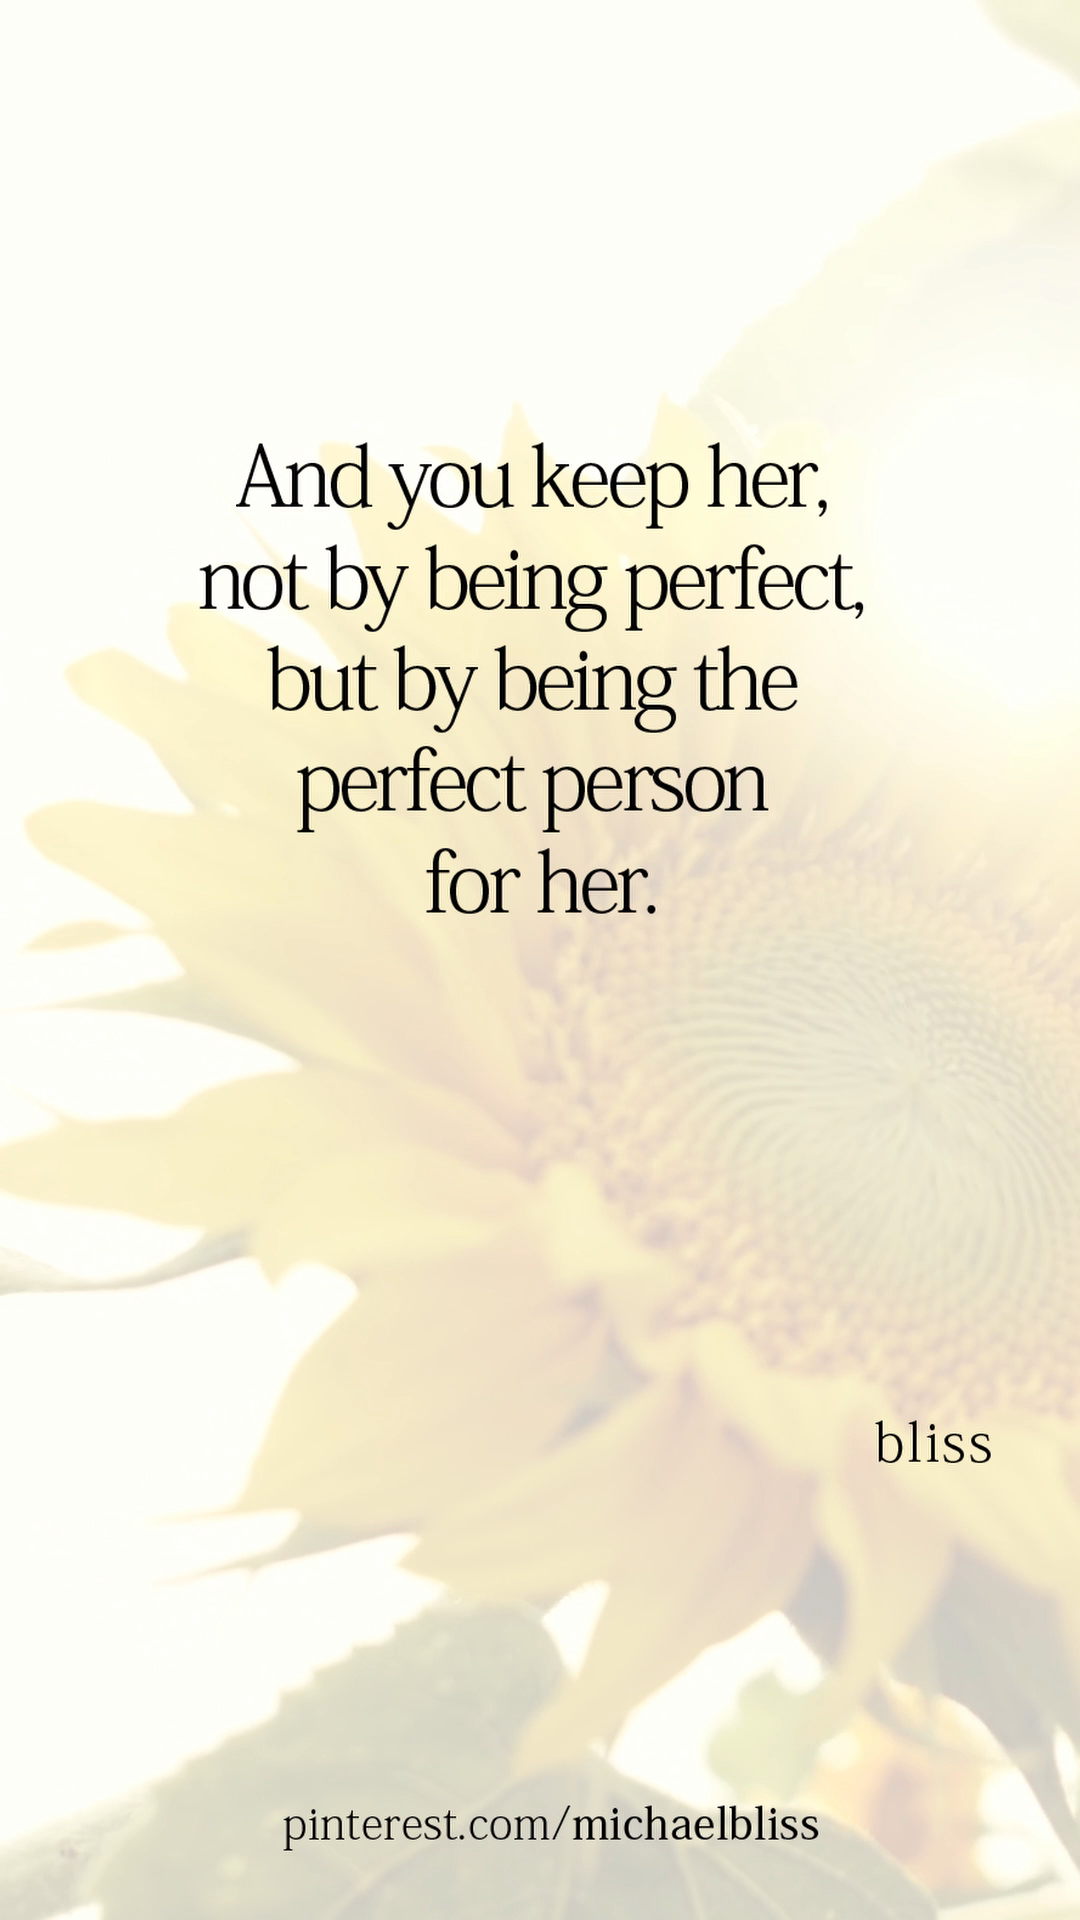 And you keep her, not by being perfect, but by being the perfect person for her.